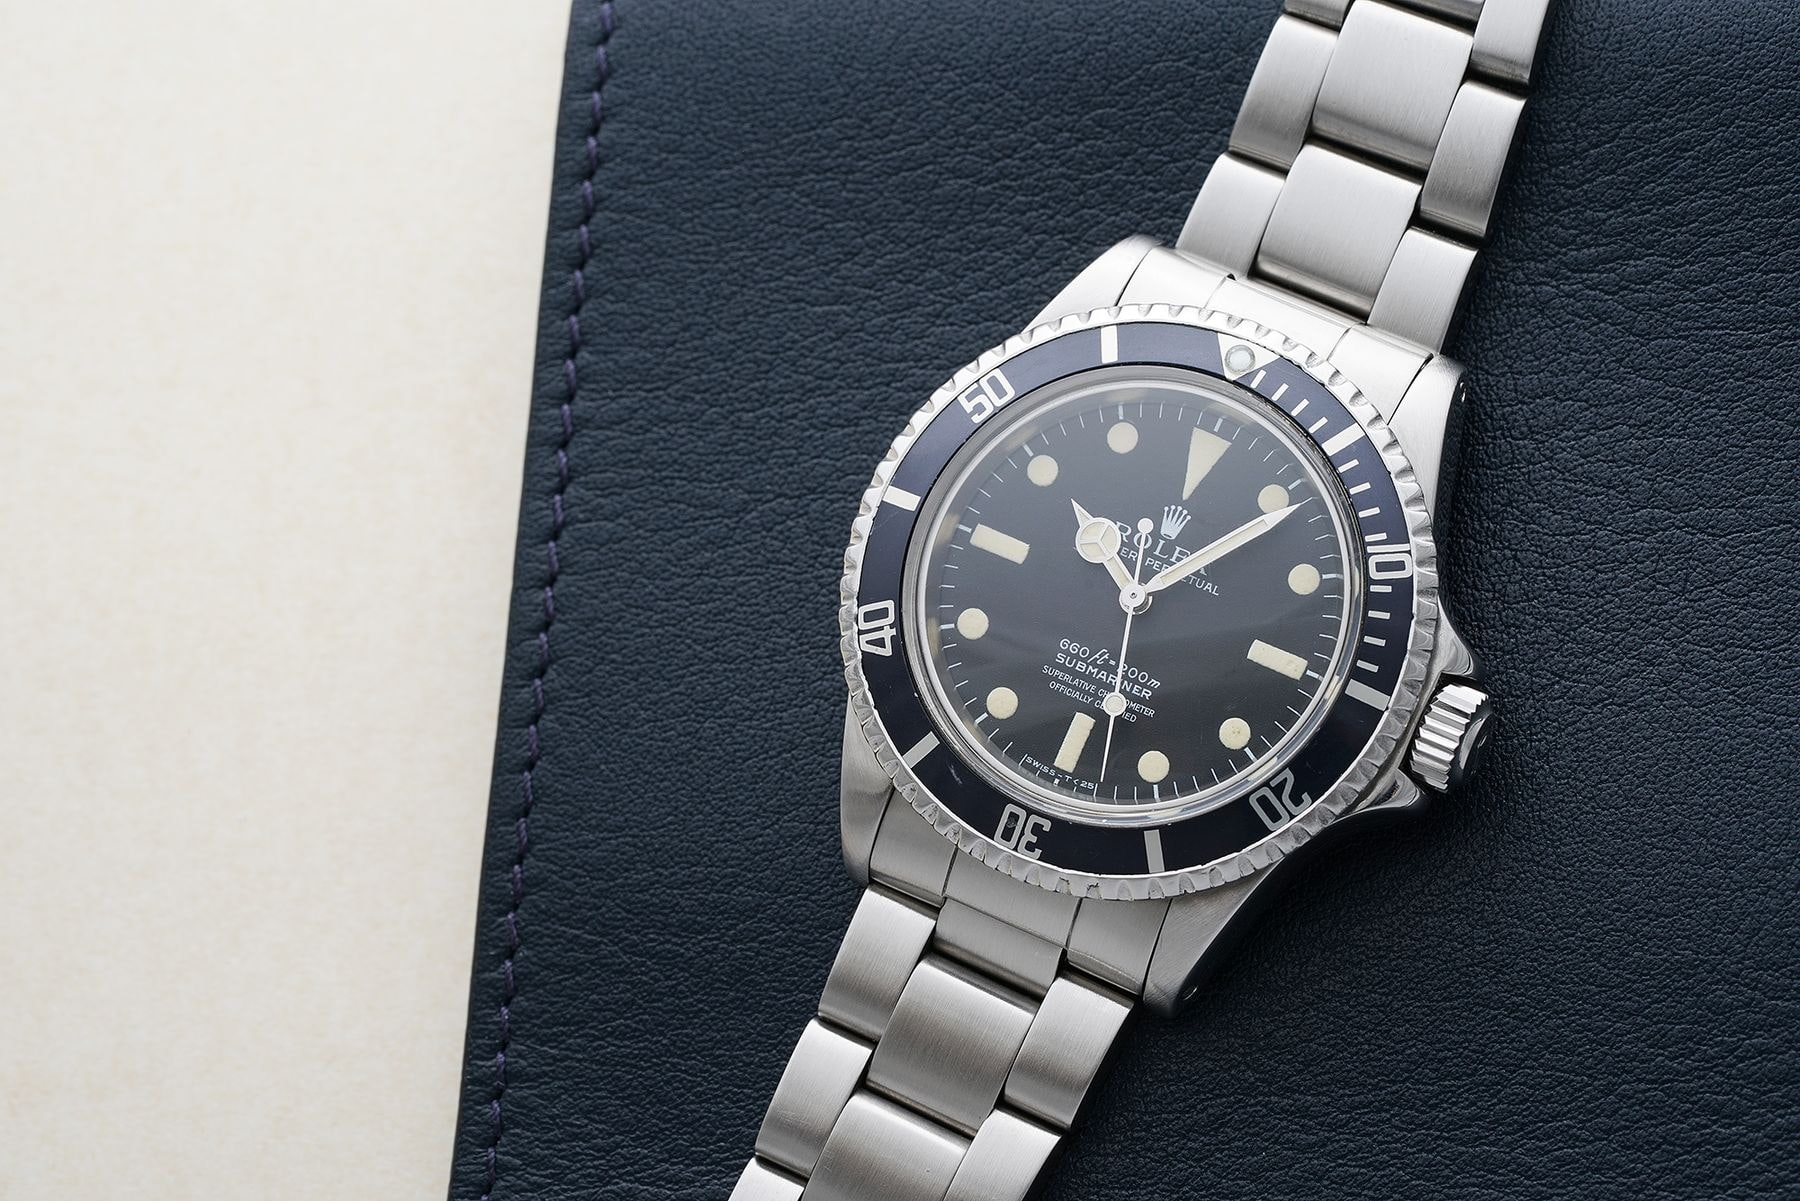 Auction Report: The McQueen Estate Disputes The Provenance Of Supposed Steve McQueen Submariner Being Sold By Phillips rolex